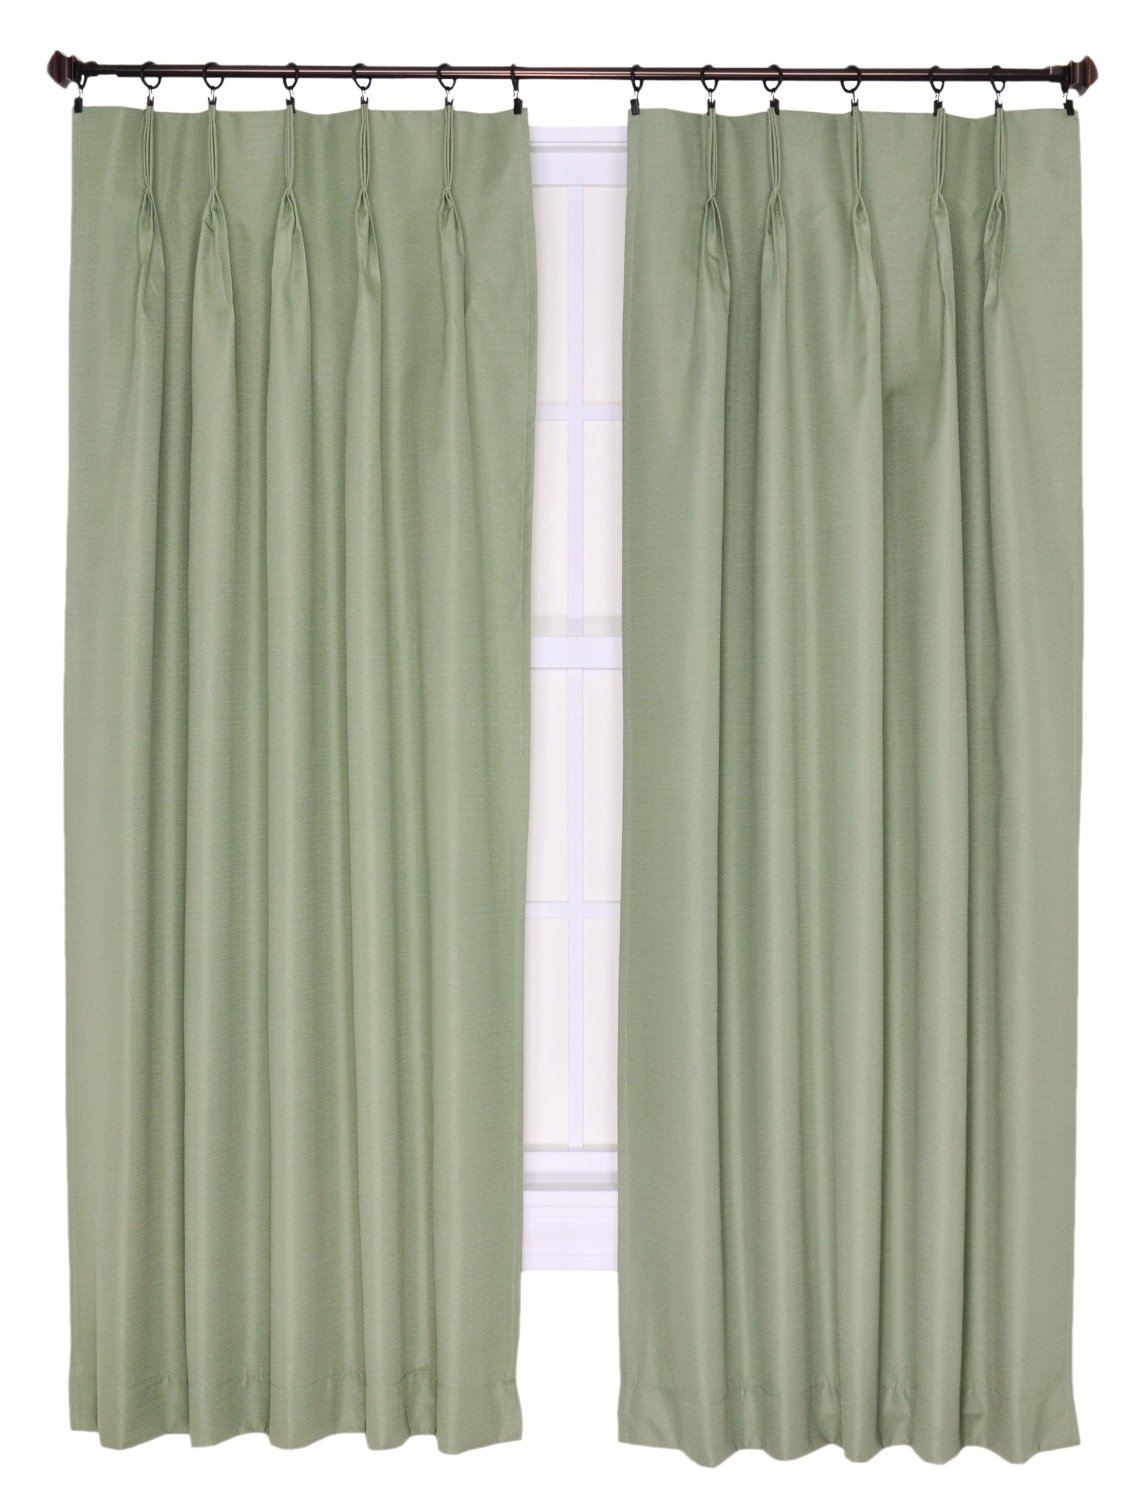 Thermal Curtains 96 Inch Long 96 Inch Bamboo Curtains